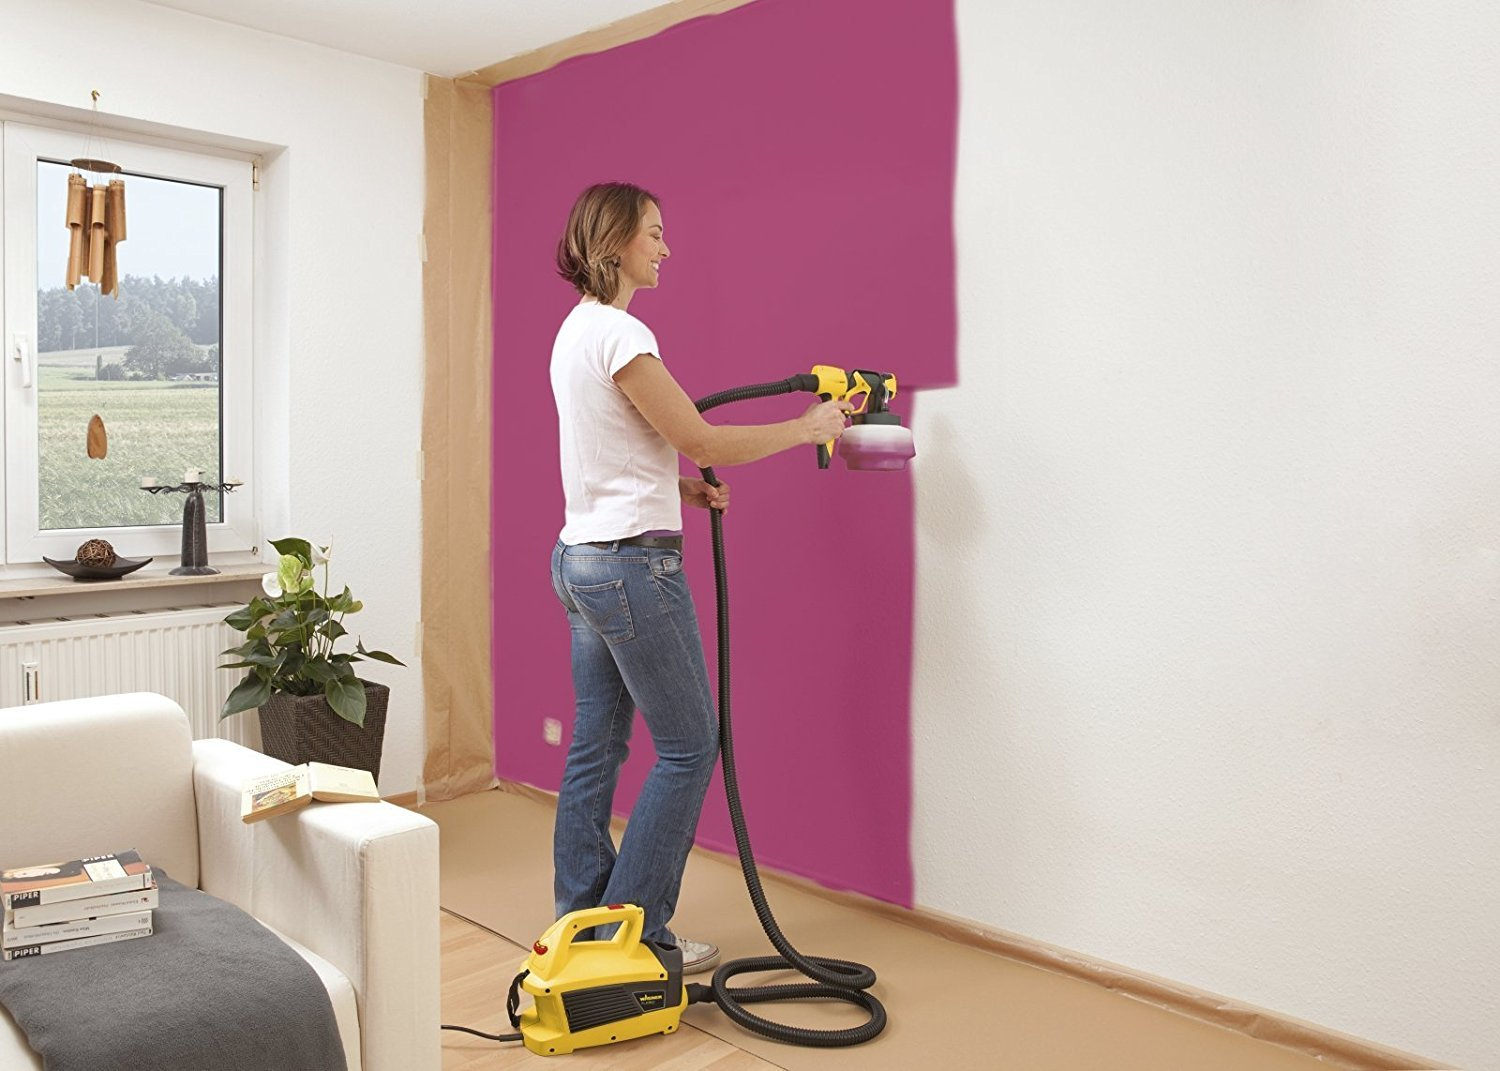 Best Paint Sprayers For Interior Walls Reviewed Rated